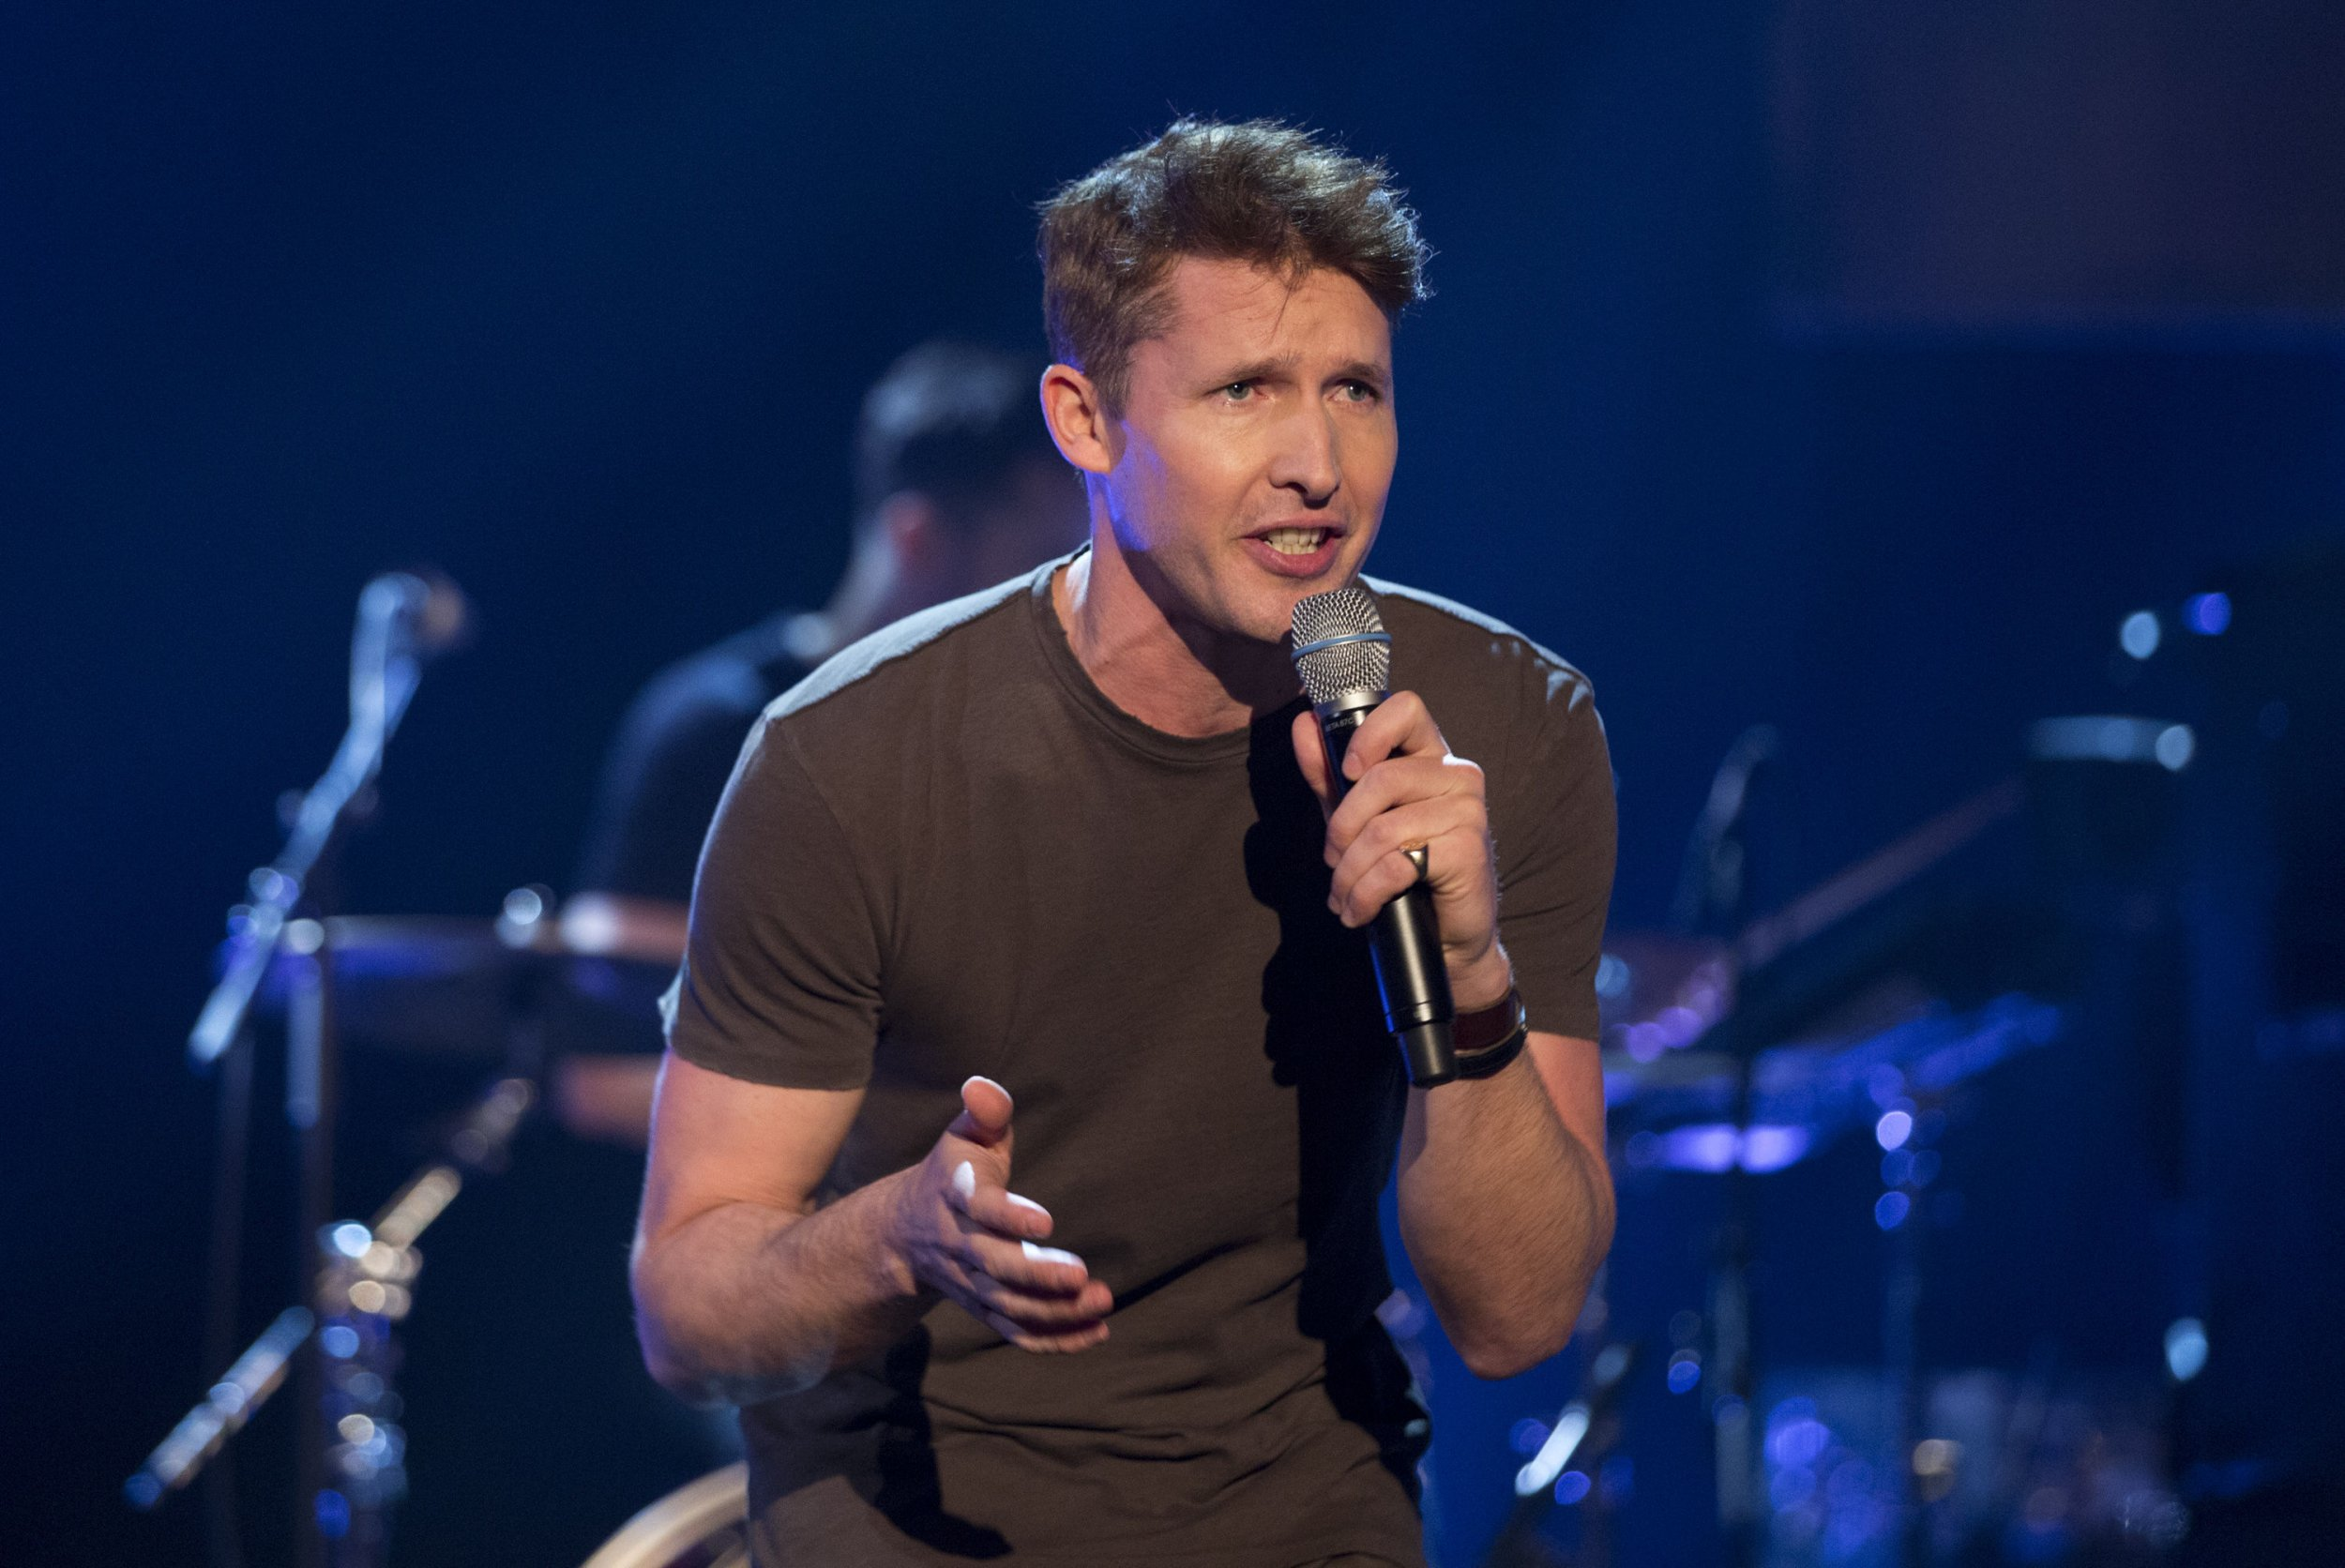 James Blunt performing during filming of the Graham Norton Show at The London Studios. PRESS ASSOCIATION Photo. Picture date: Wednesday February 22, 2017. Photo credit should read: PA Images on behalf So TV